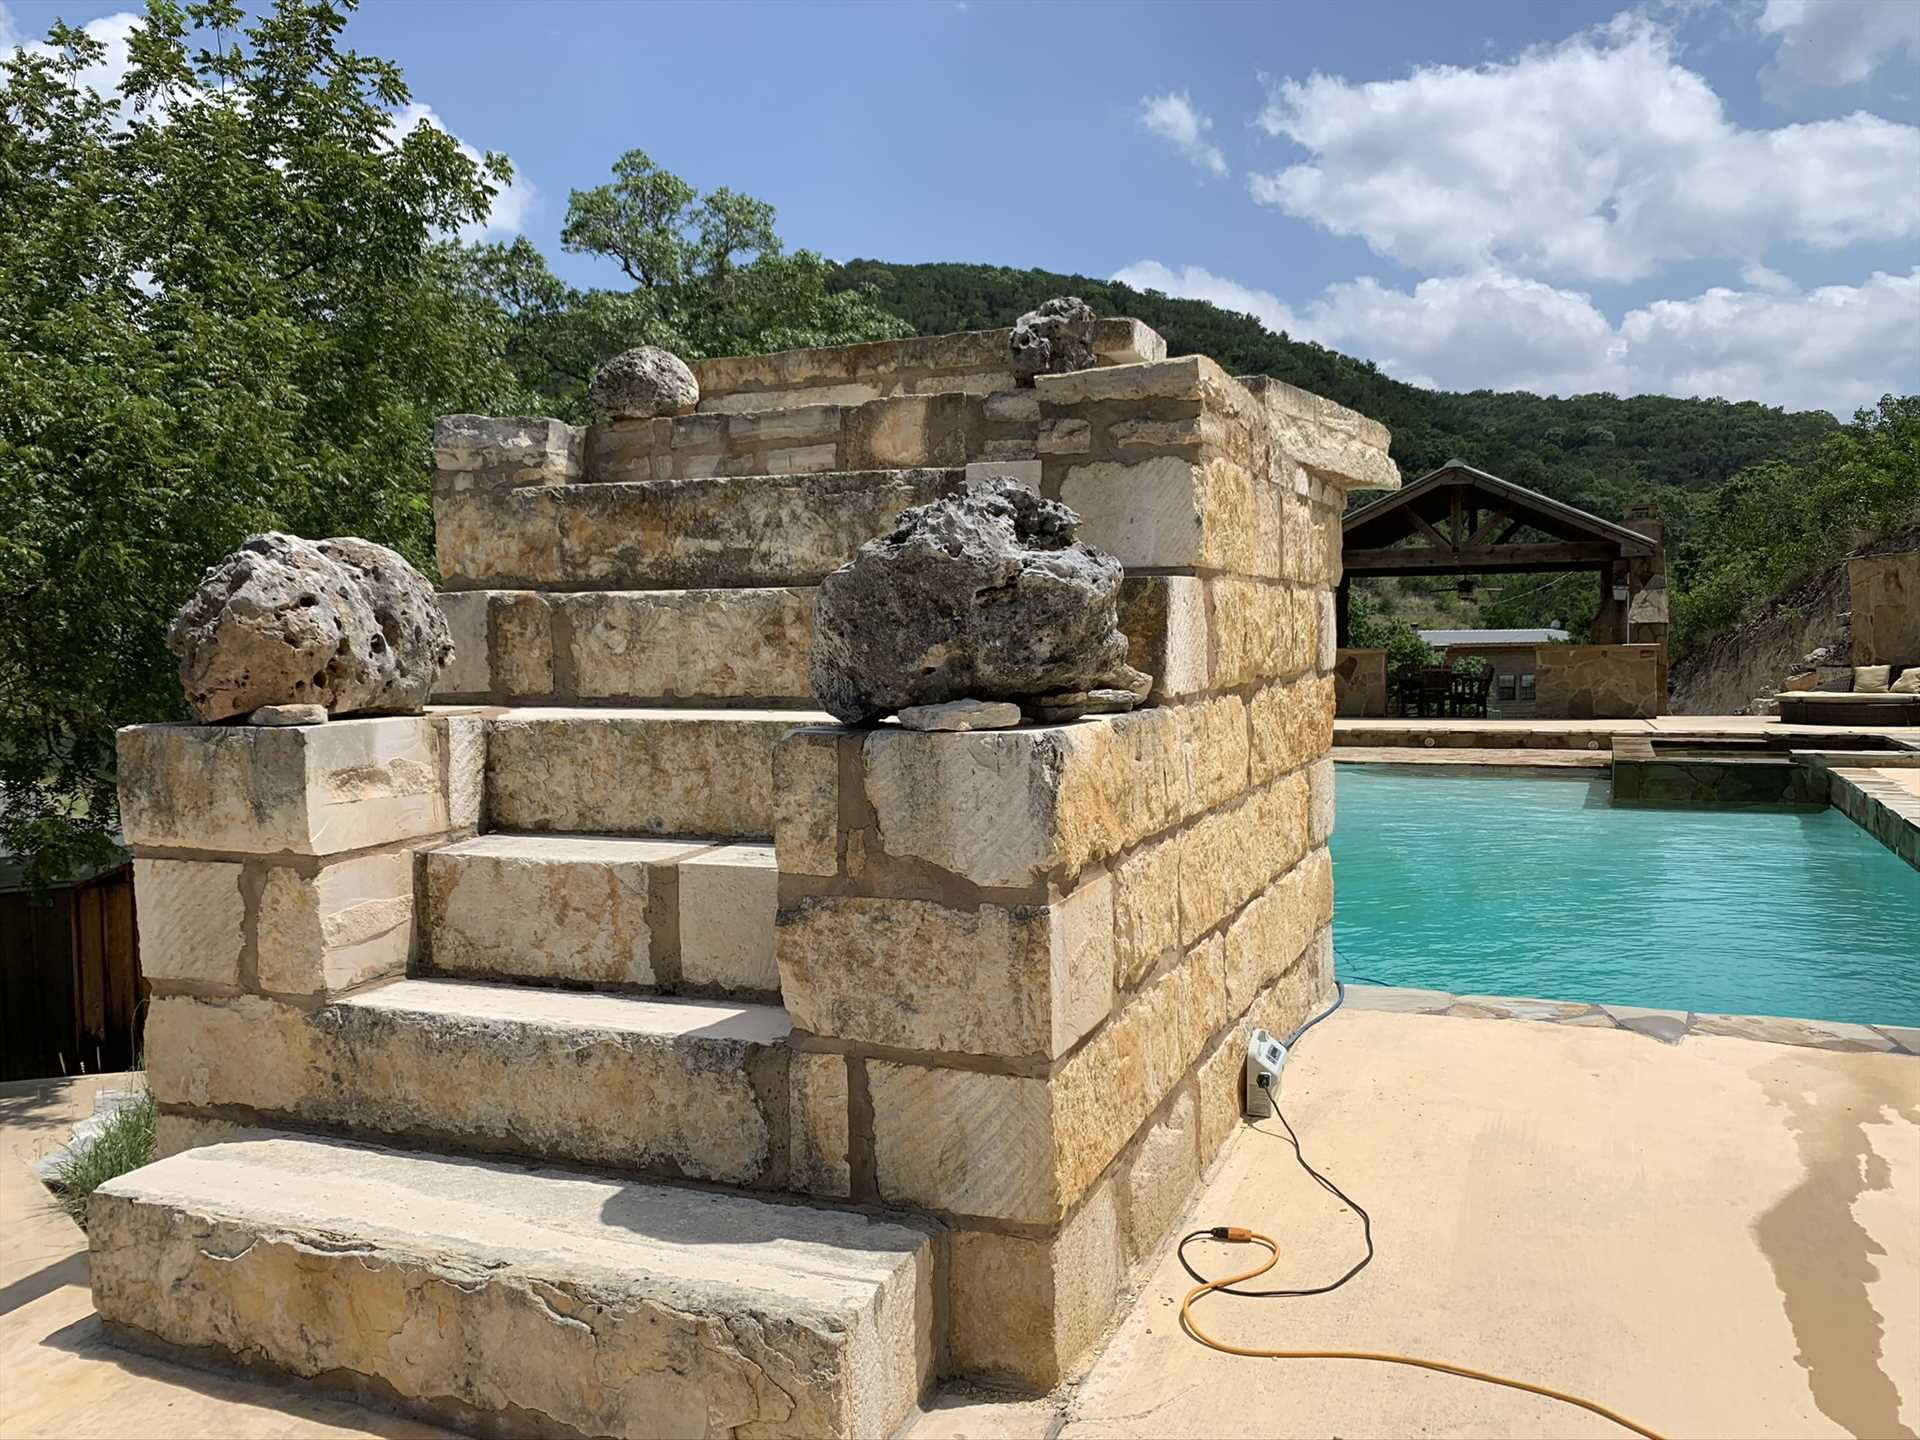 Take the plunge! This custom stone diving platform is your launching spot into the cool and crystal-clear waters of the pool.